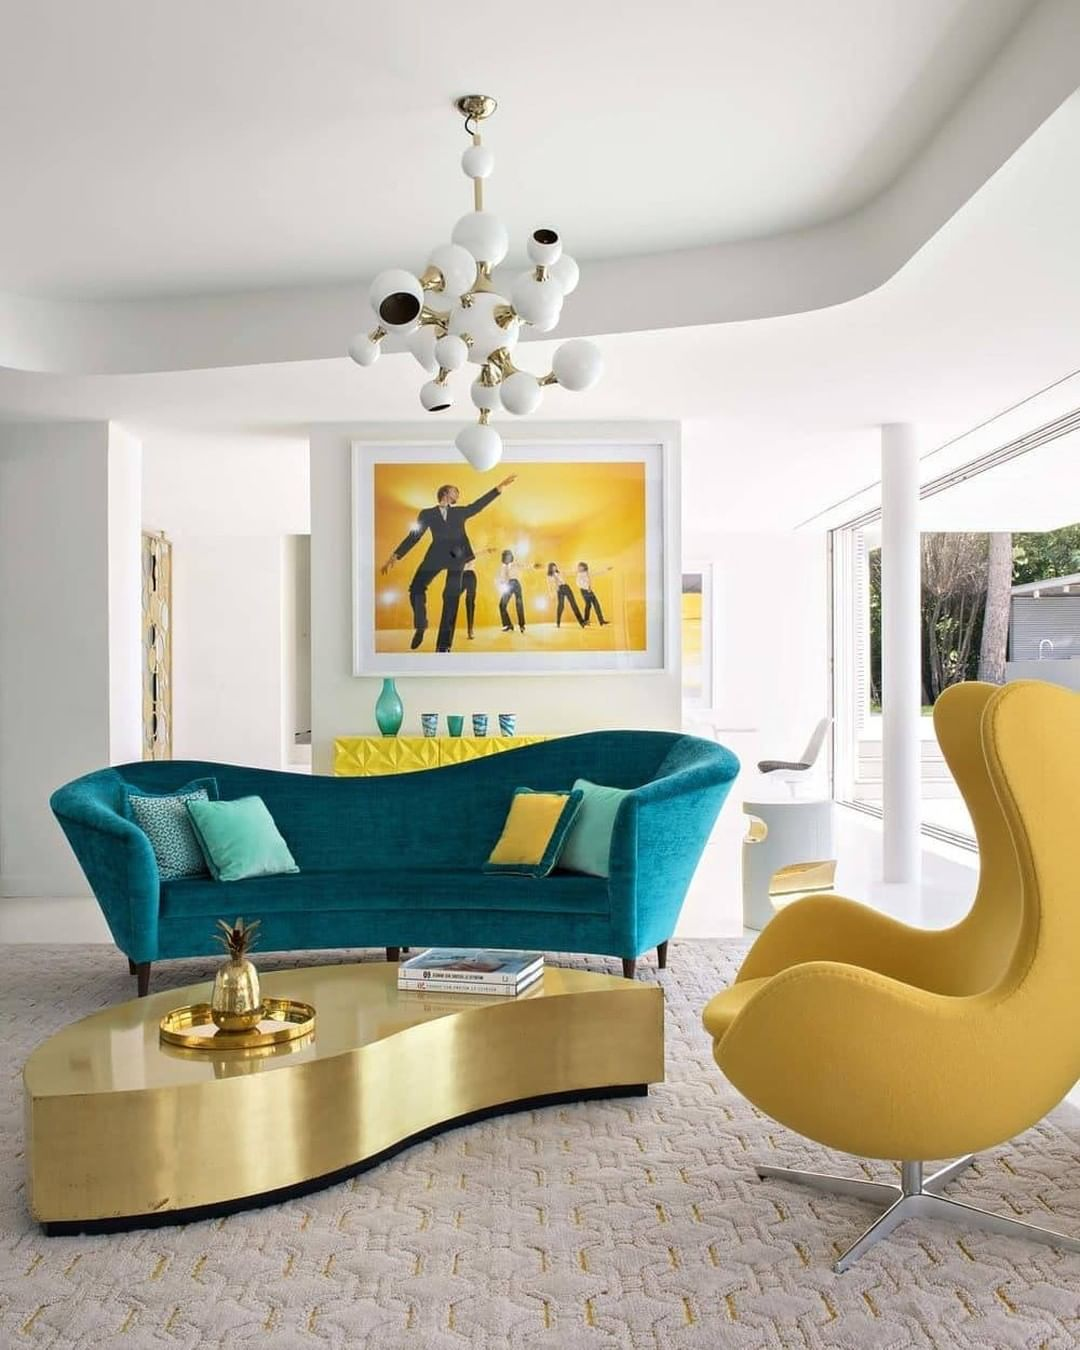 INSPLOSION_BRIGHT-AND-COLORFUL-LIVING-ROOM_BY_CH_DL-How-to-Decorate-Living-Room